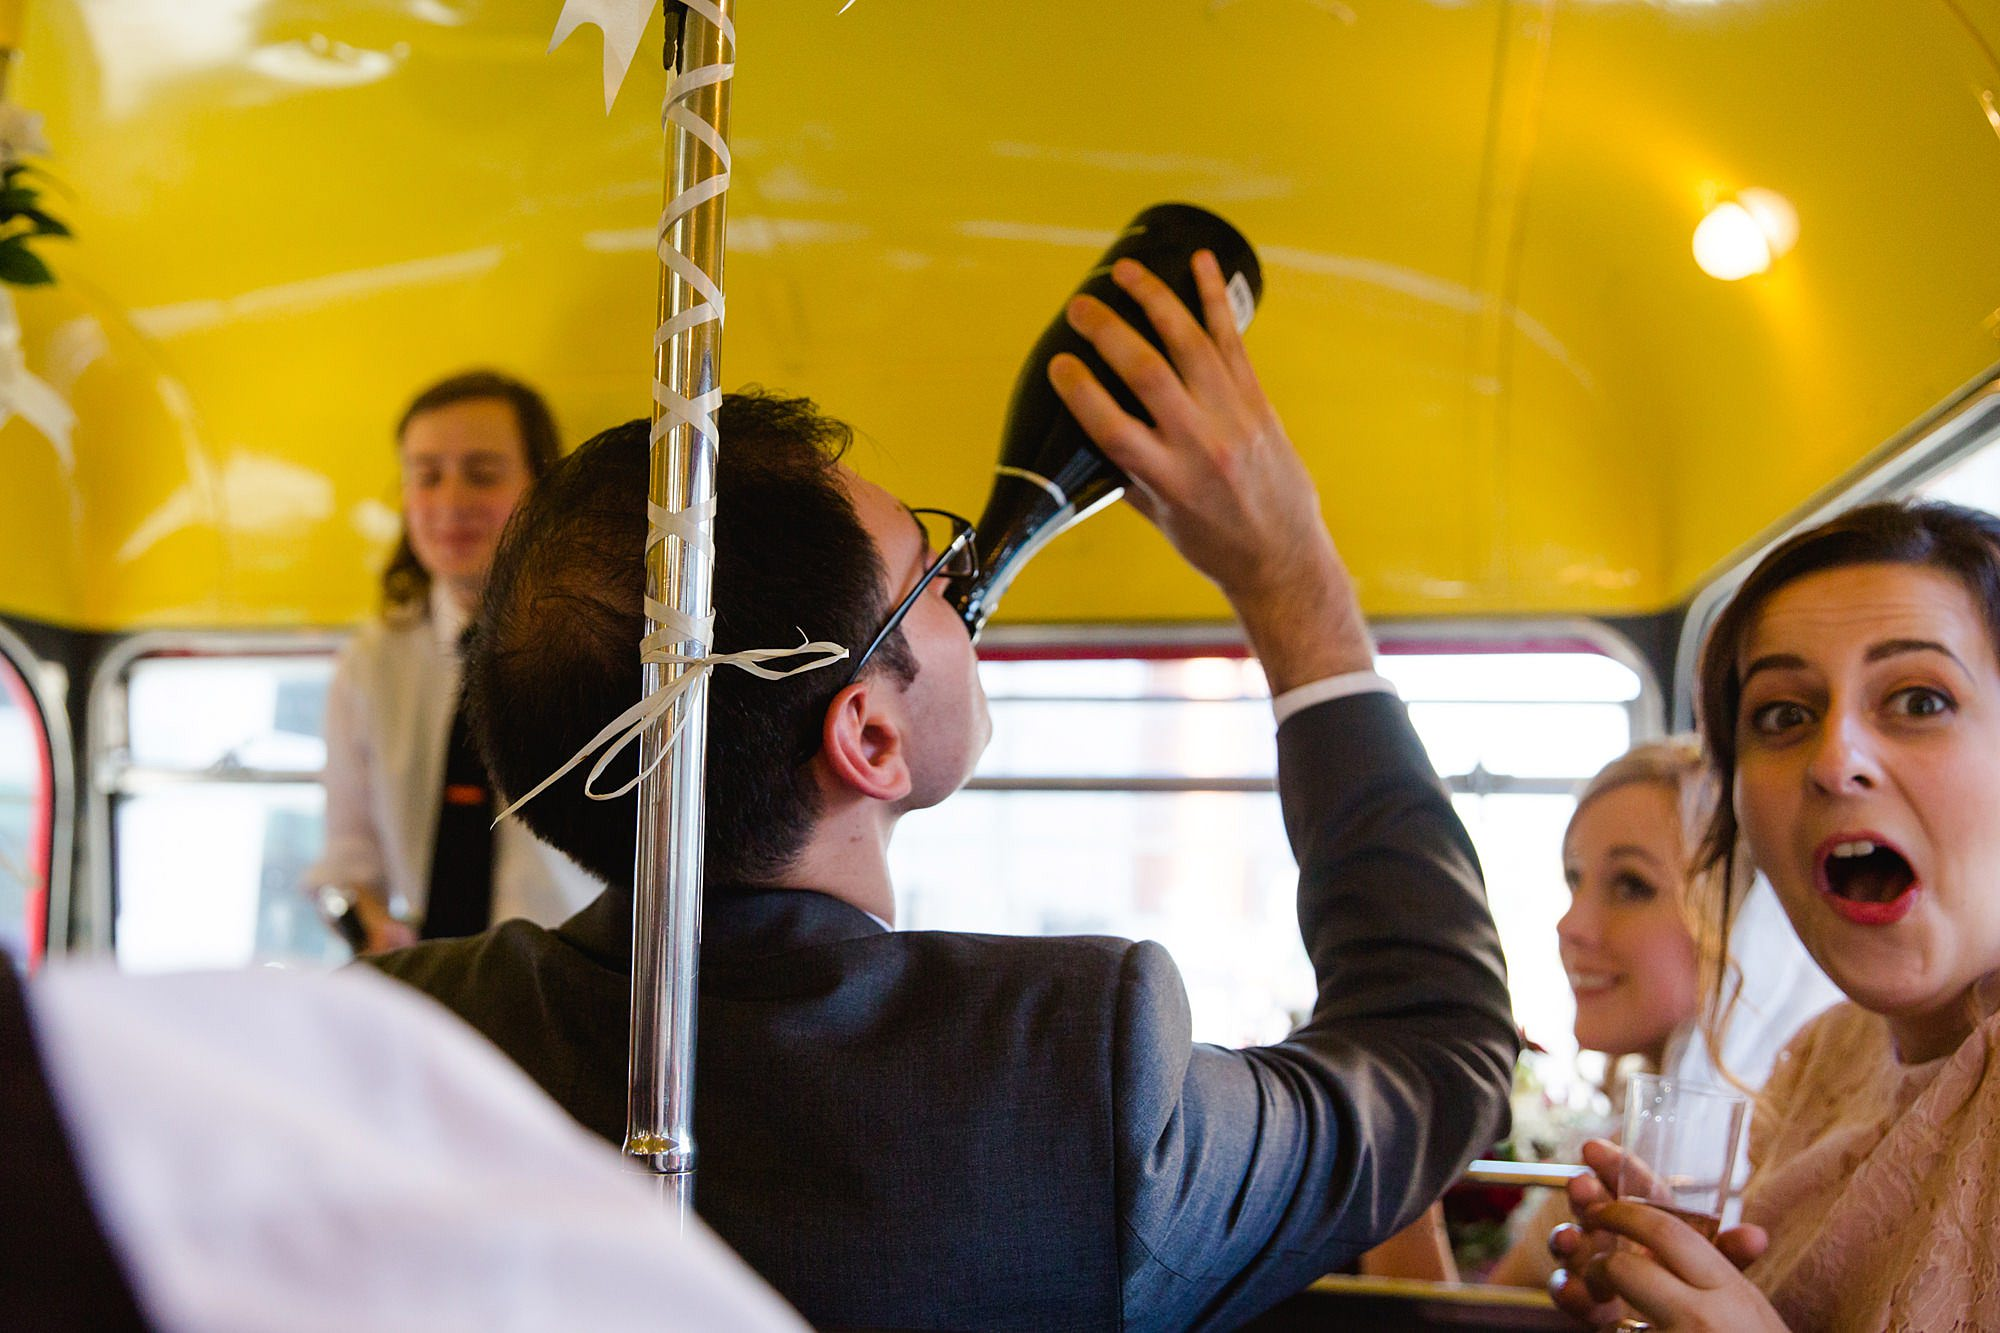 guests swigs from change bottle on bus